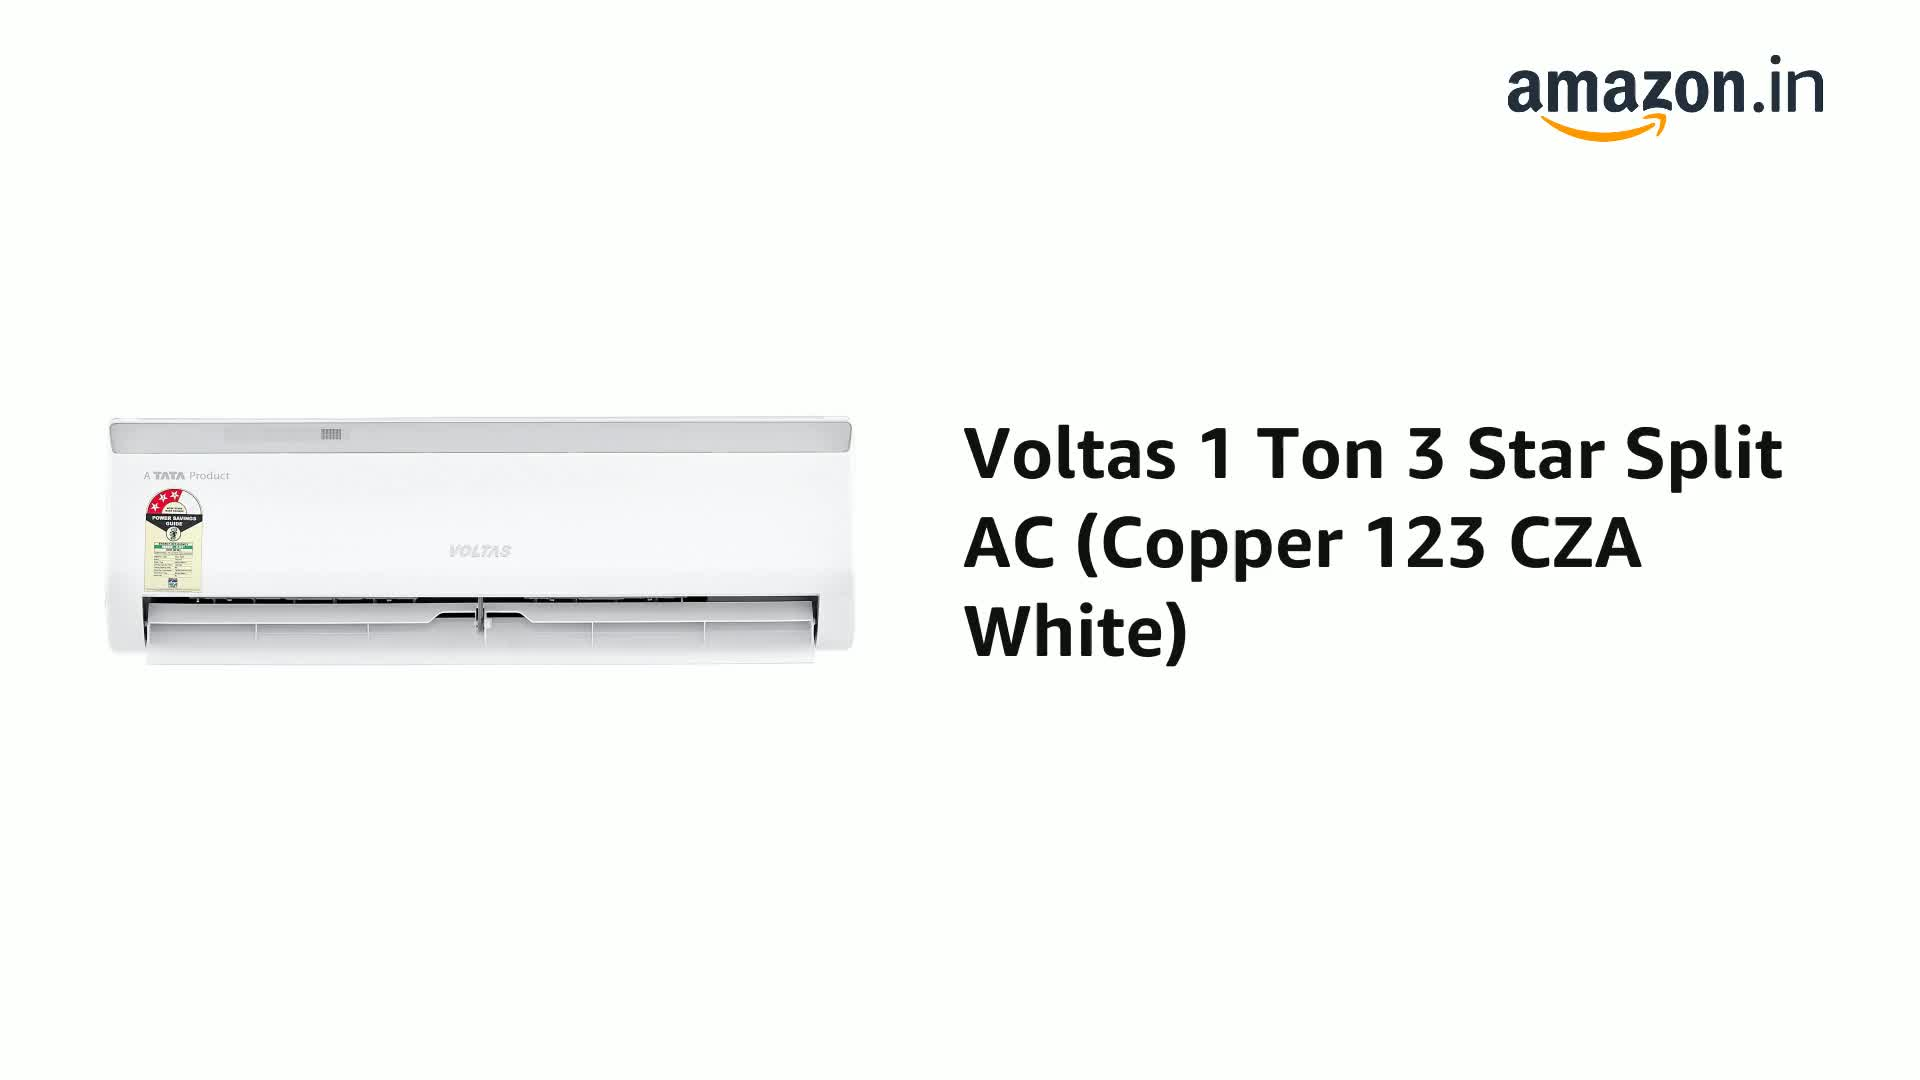 Voltas 1 Ton 3 Star Split AC (Copper 123 CZA White)